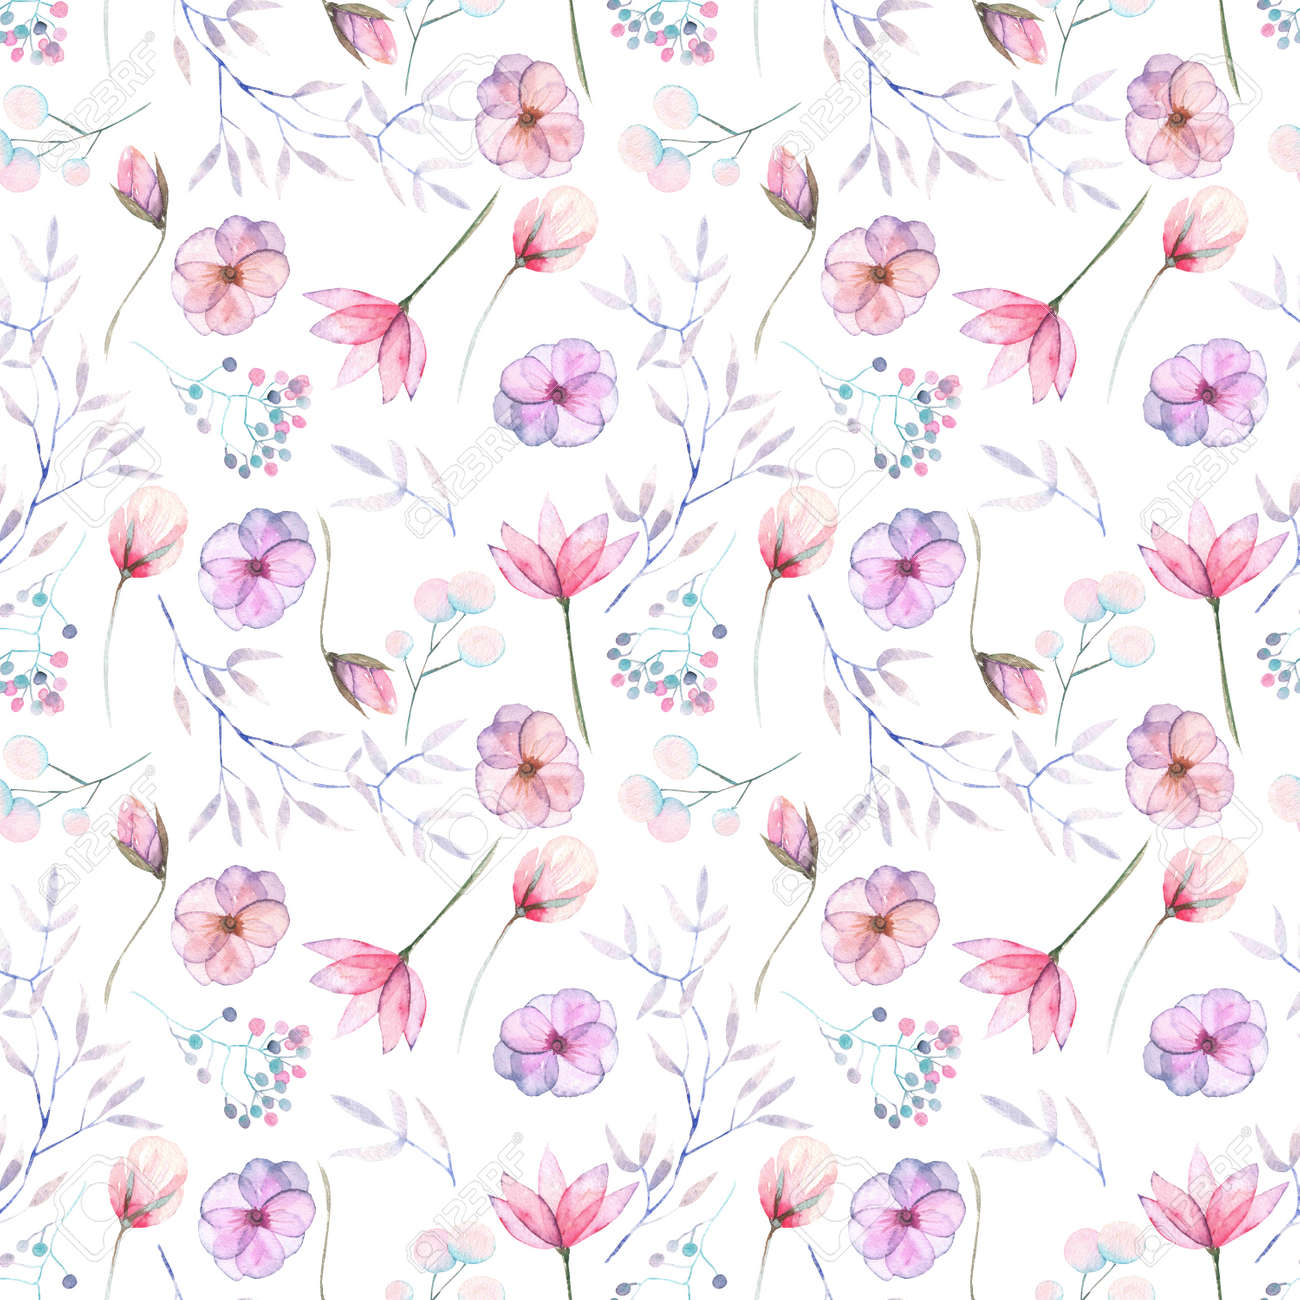 Seamless Floral Pattern With The Watercolor Pink And Purple